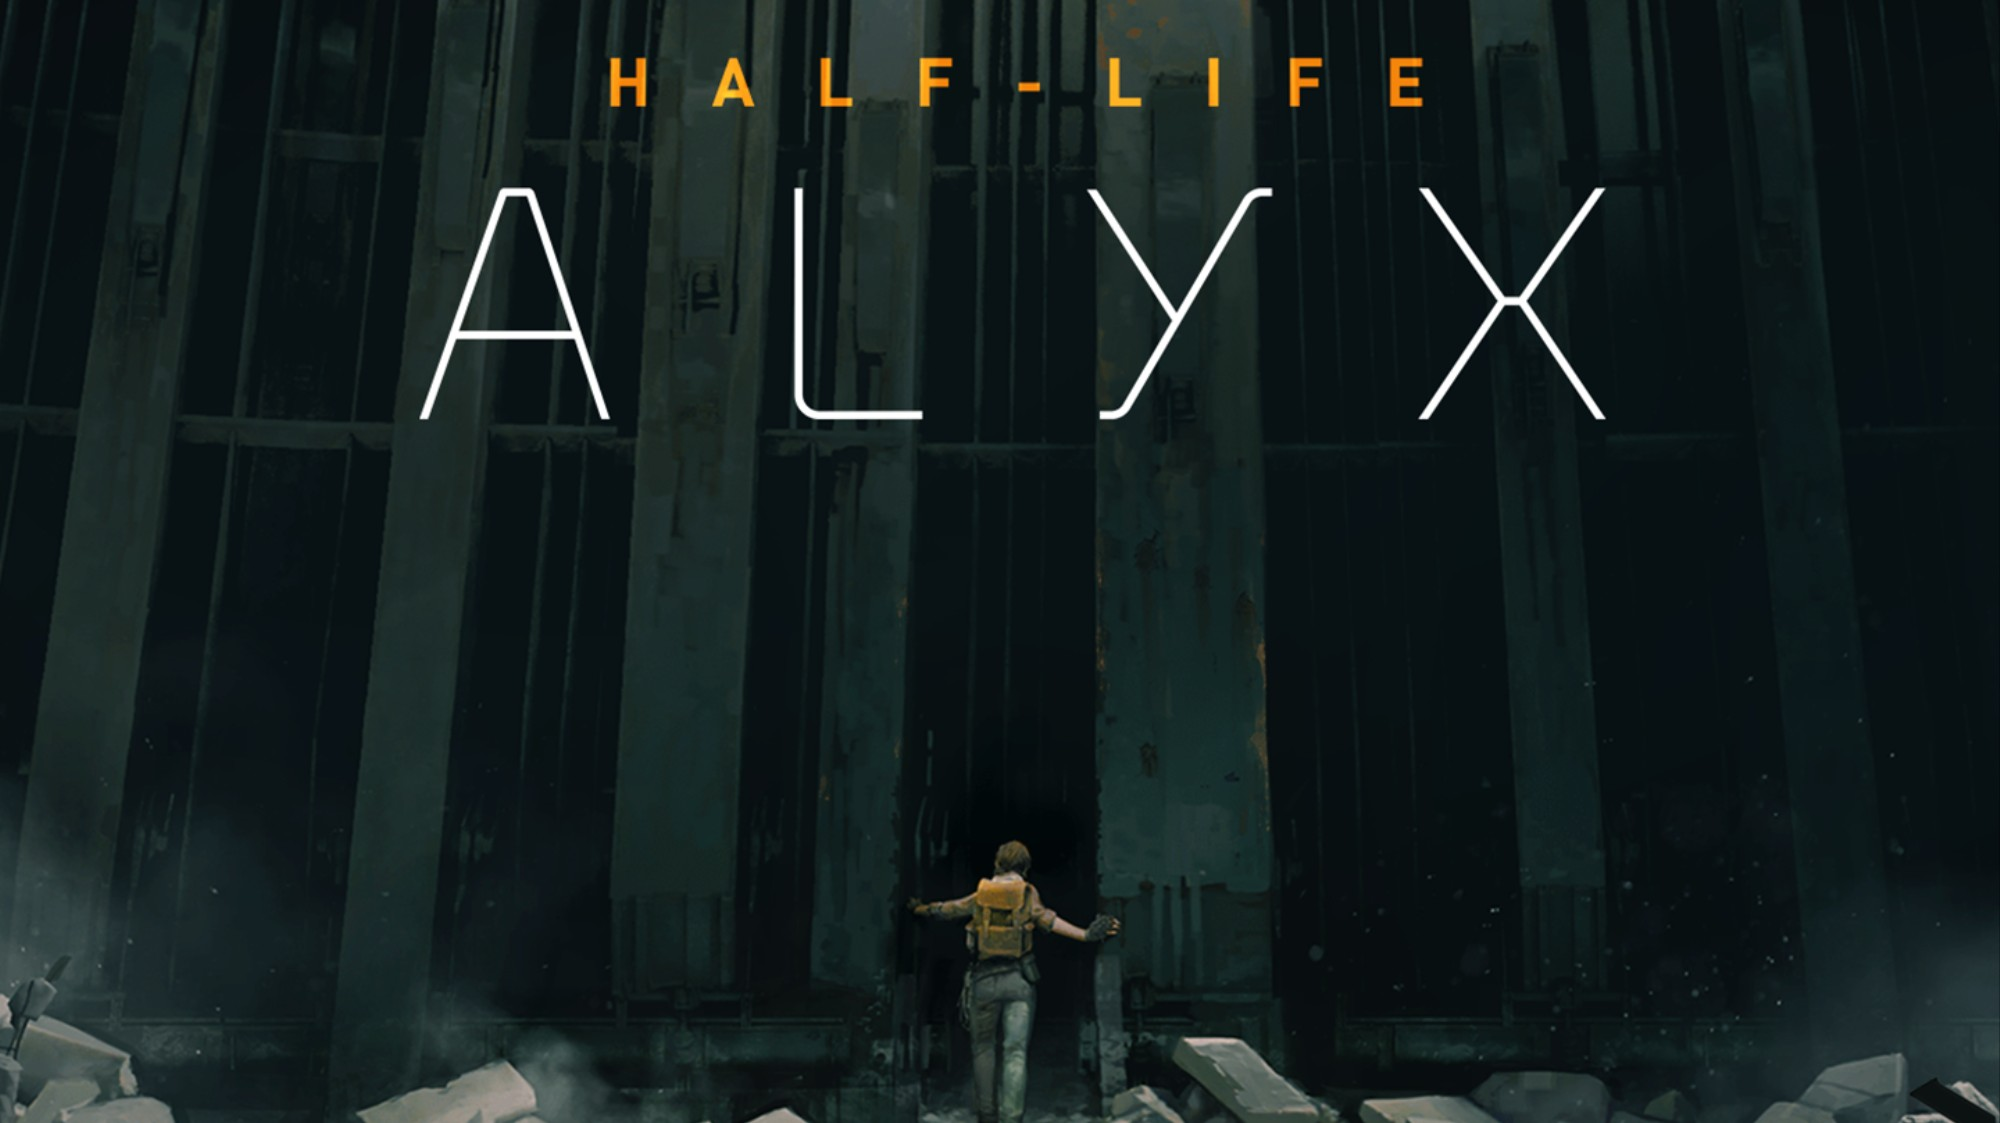 Alyx Sex half-life: alyx' arrives march 2020, and it looks stunning